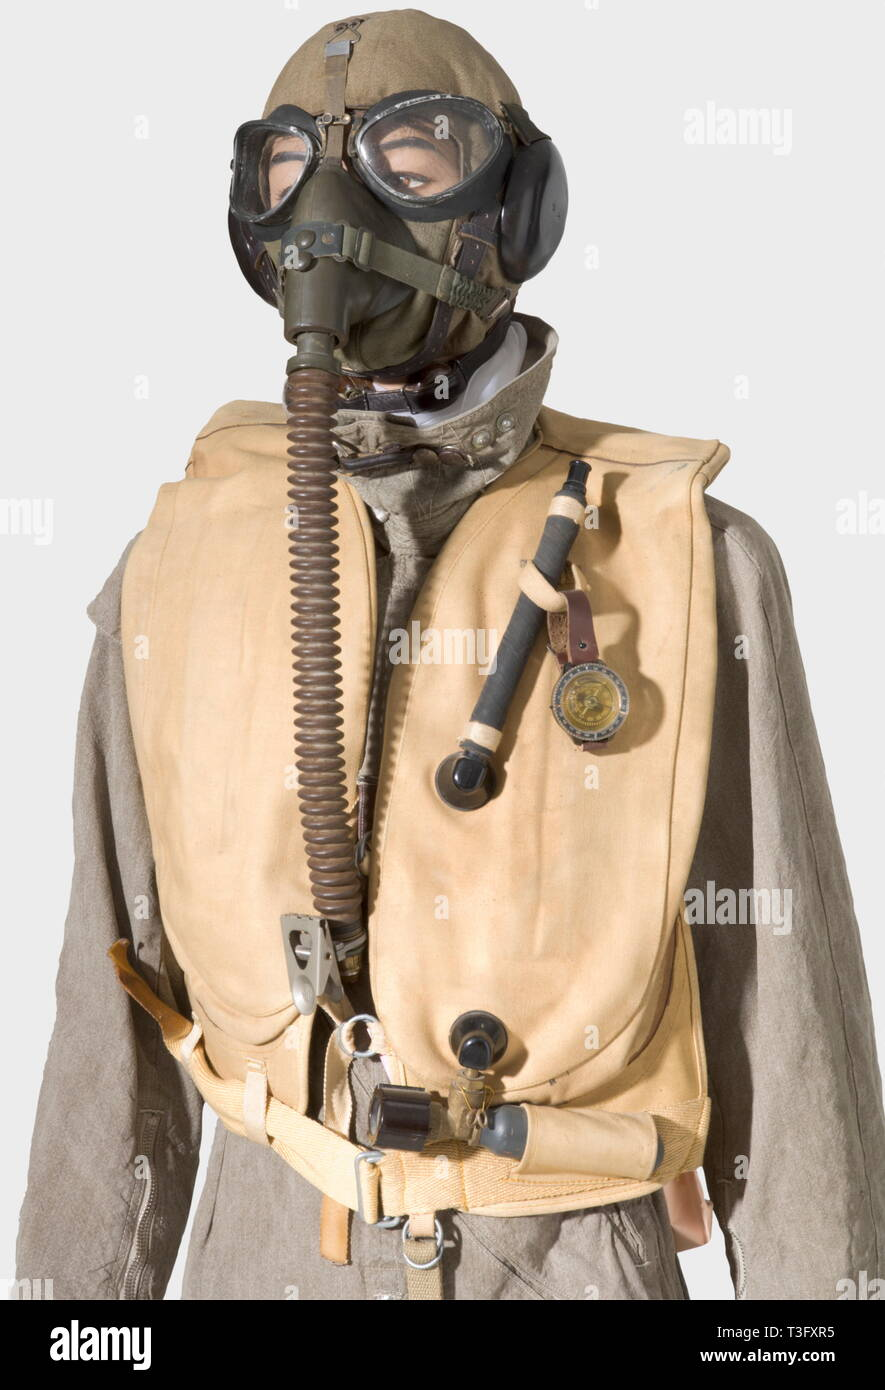 hight resolution of a pilot s uniform ensemble during the aerial bombing of england 1940 44 a